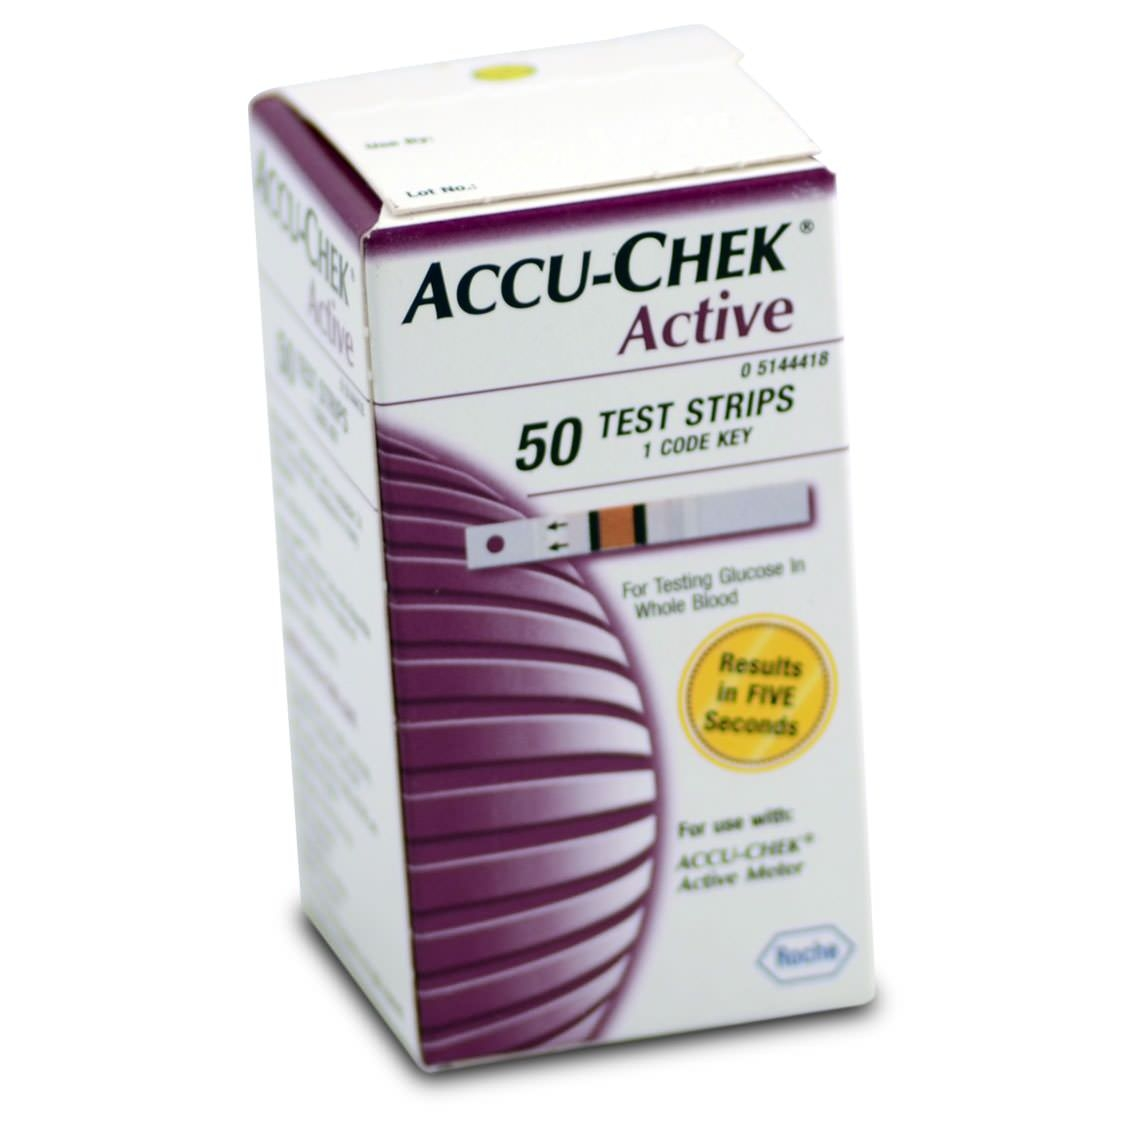 Accu Chek Diabetic Test Strips Healthwarehouse Com